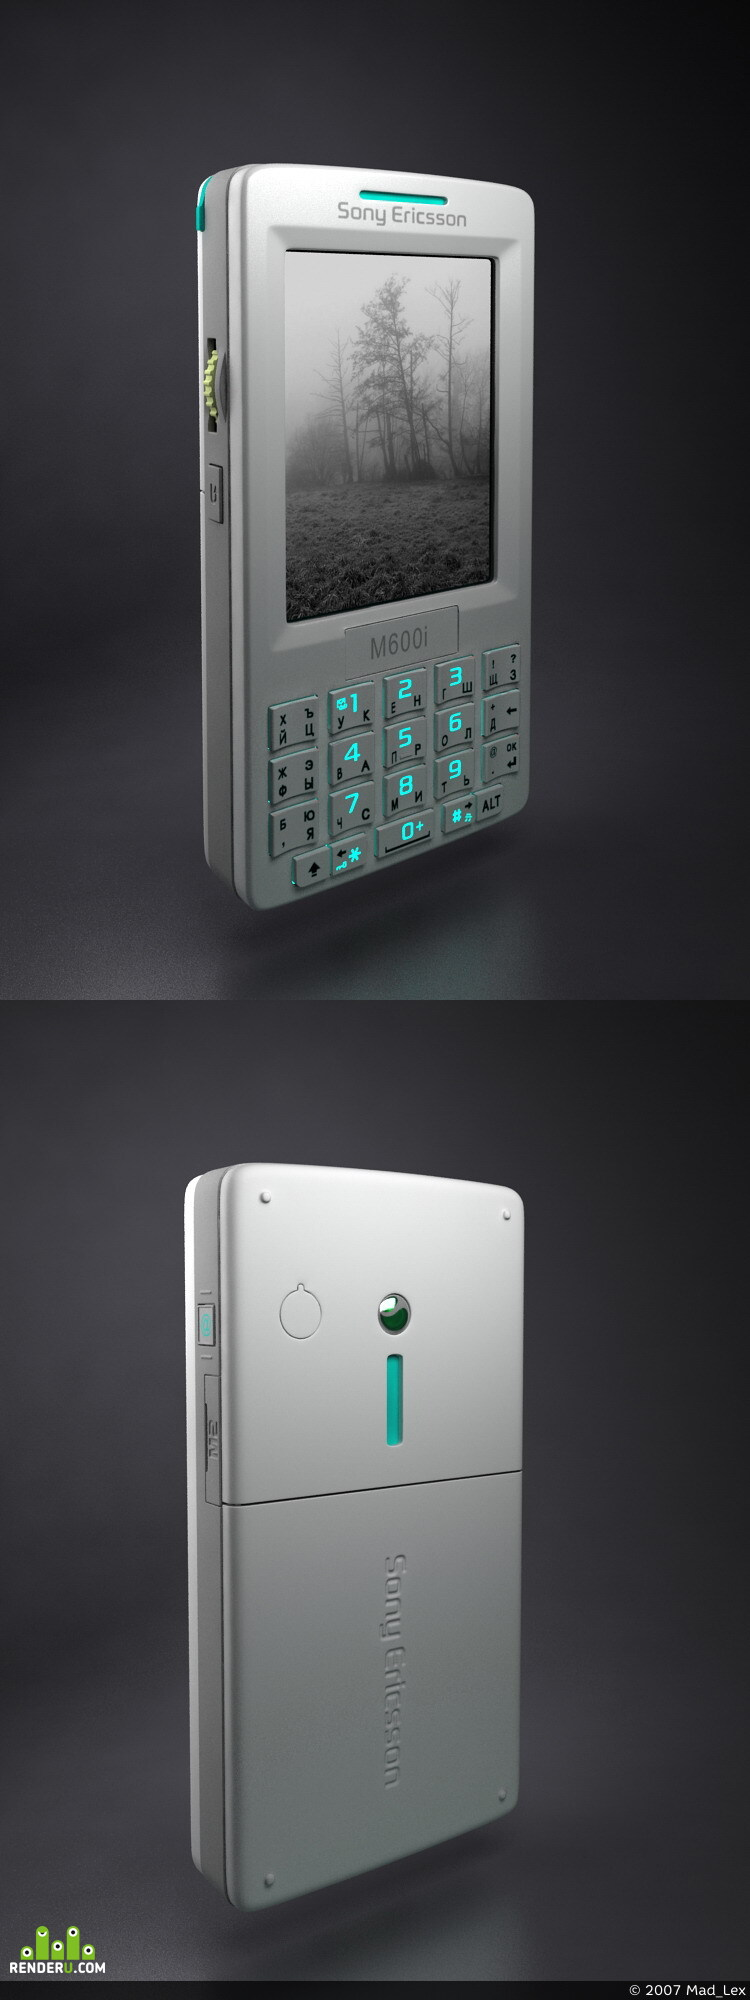 preview Sony Ericsson M600i